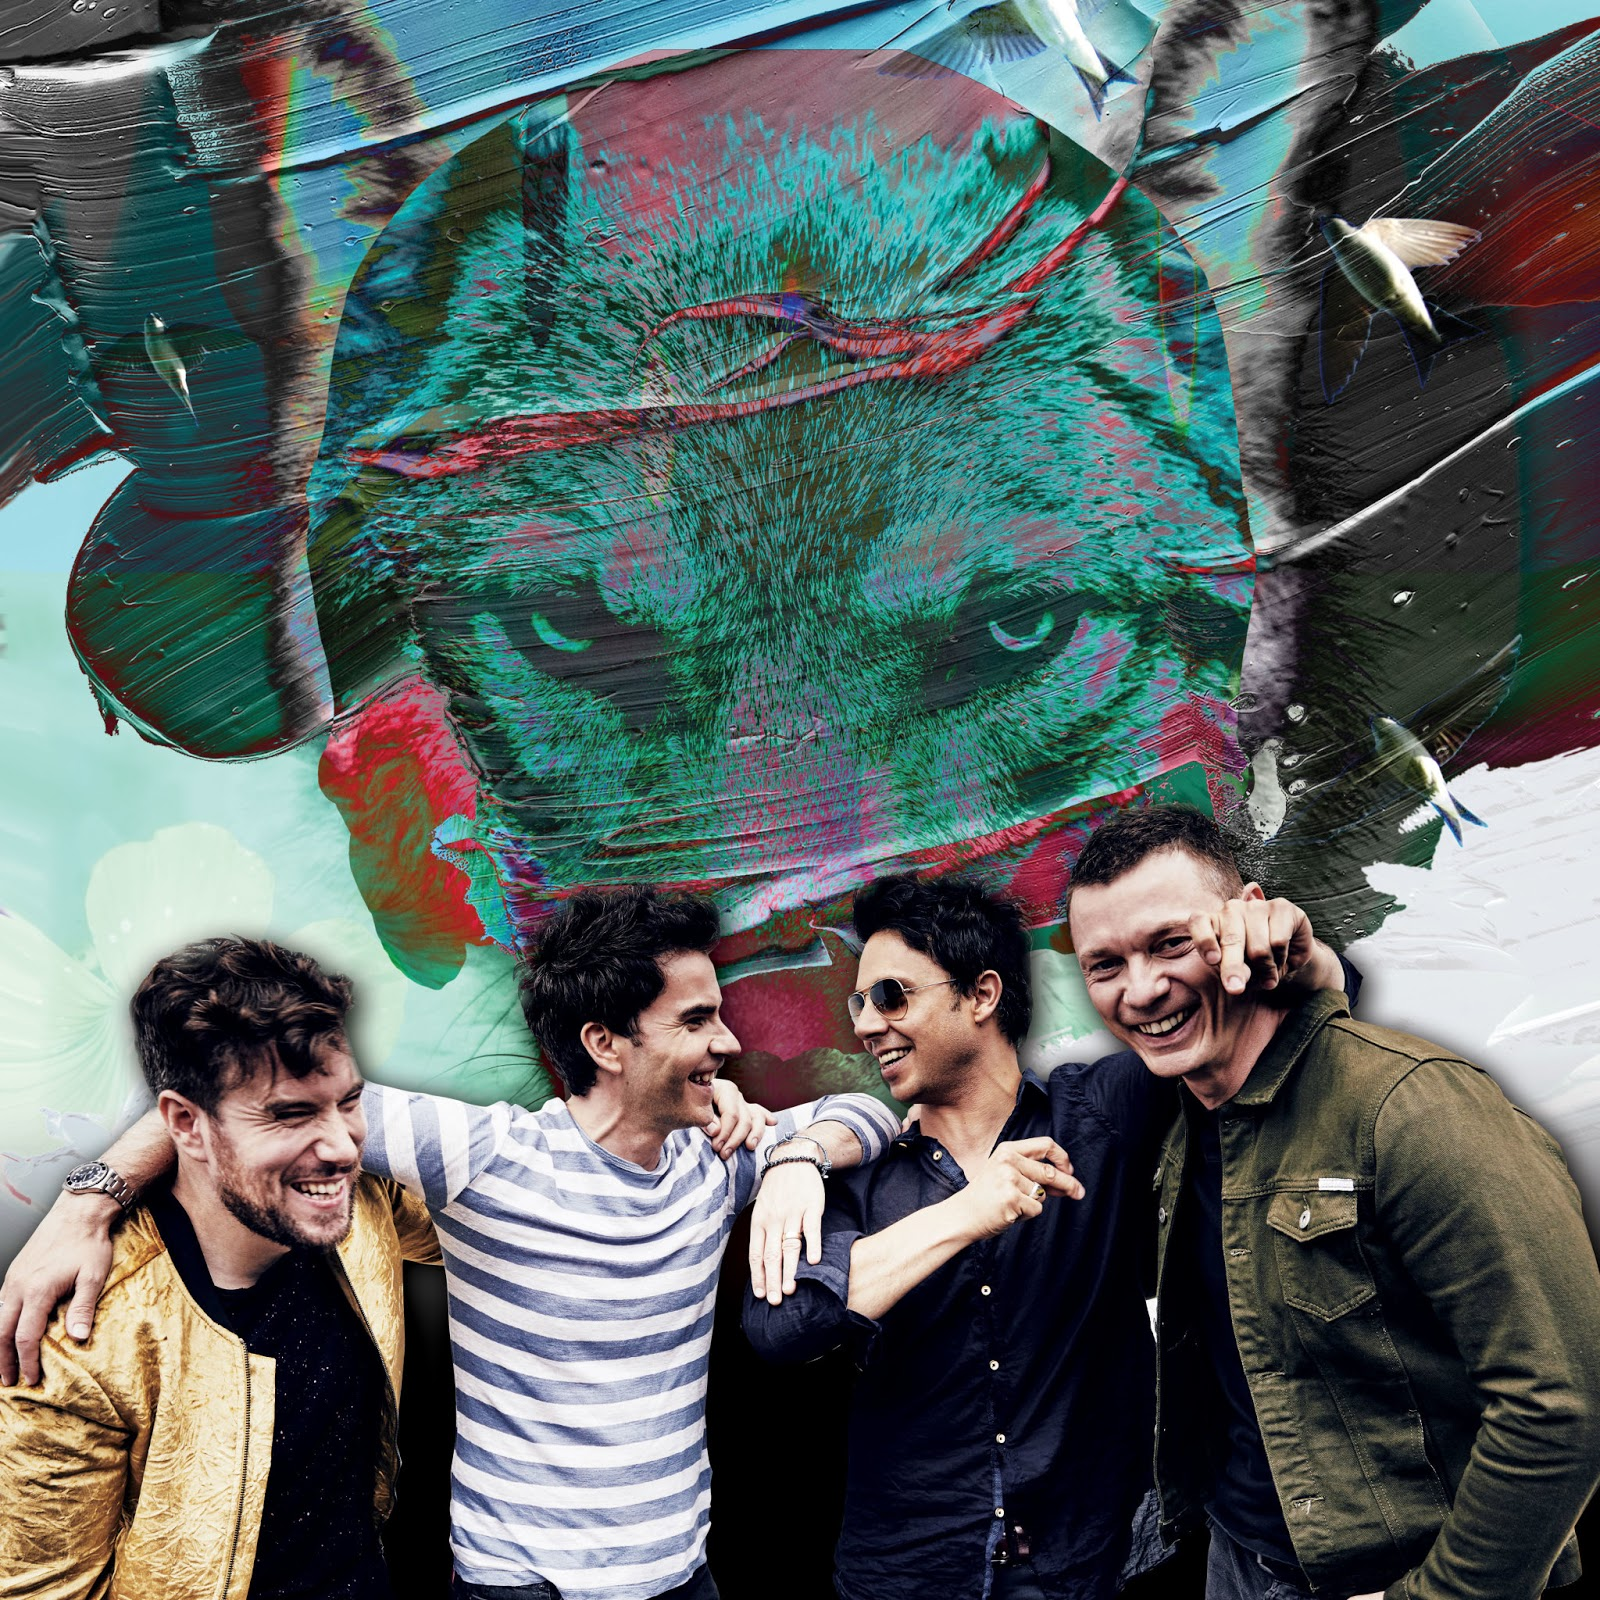 Britain rock icons Stereophonics to play in Singapore